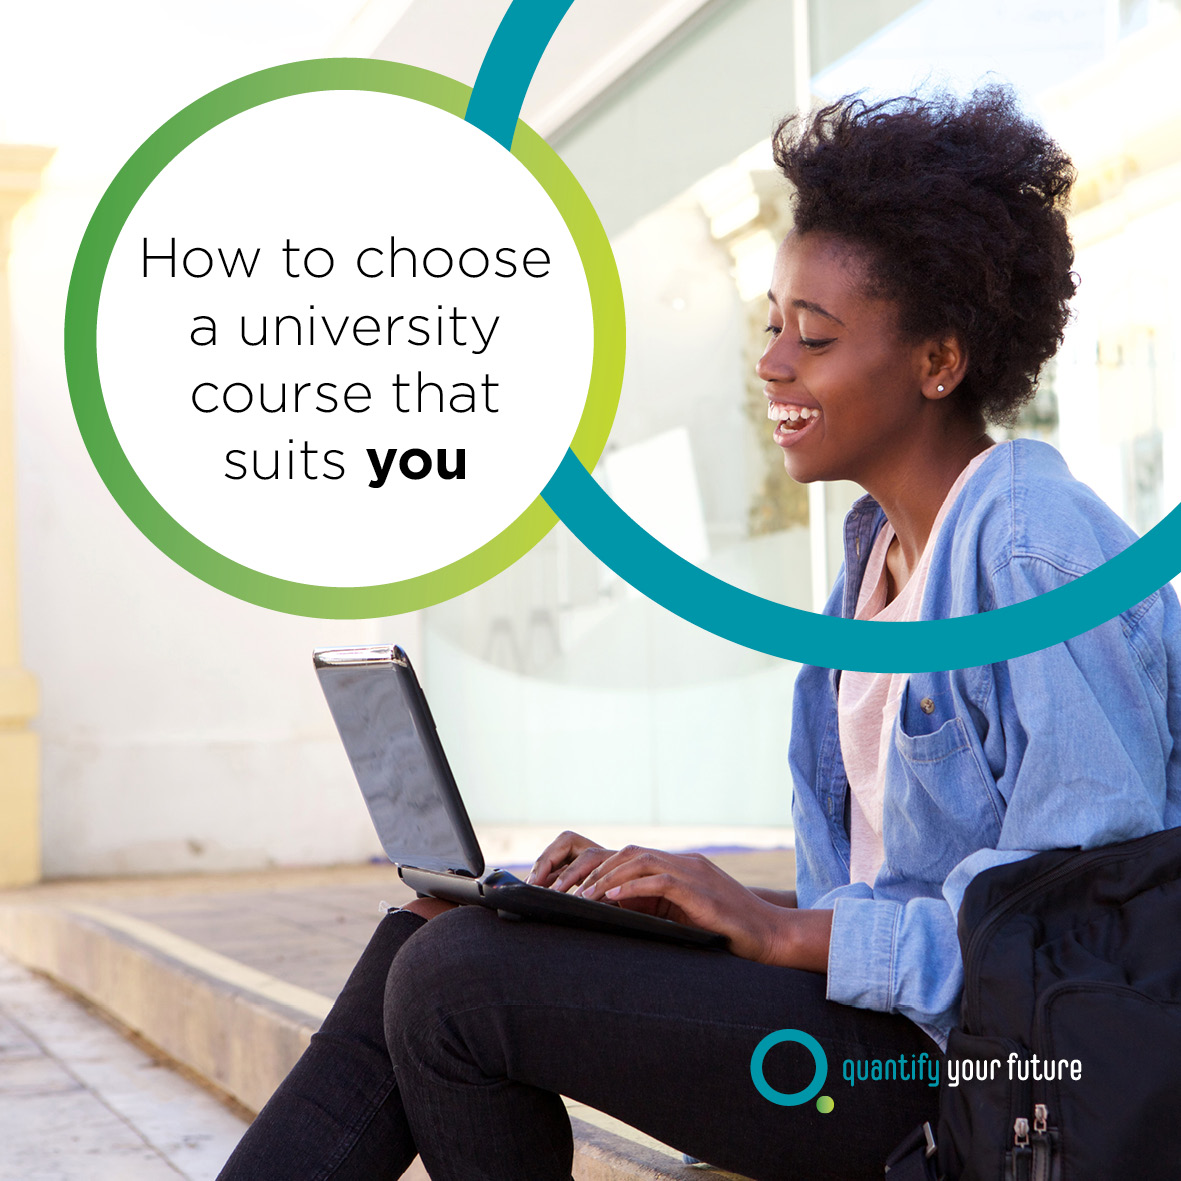 How to choose a university coarse that suits you